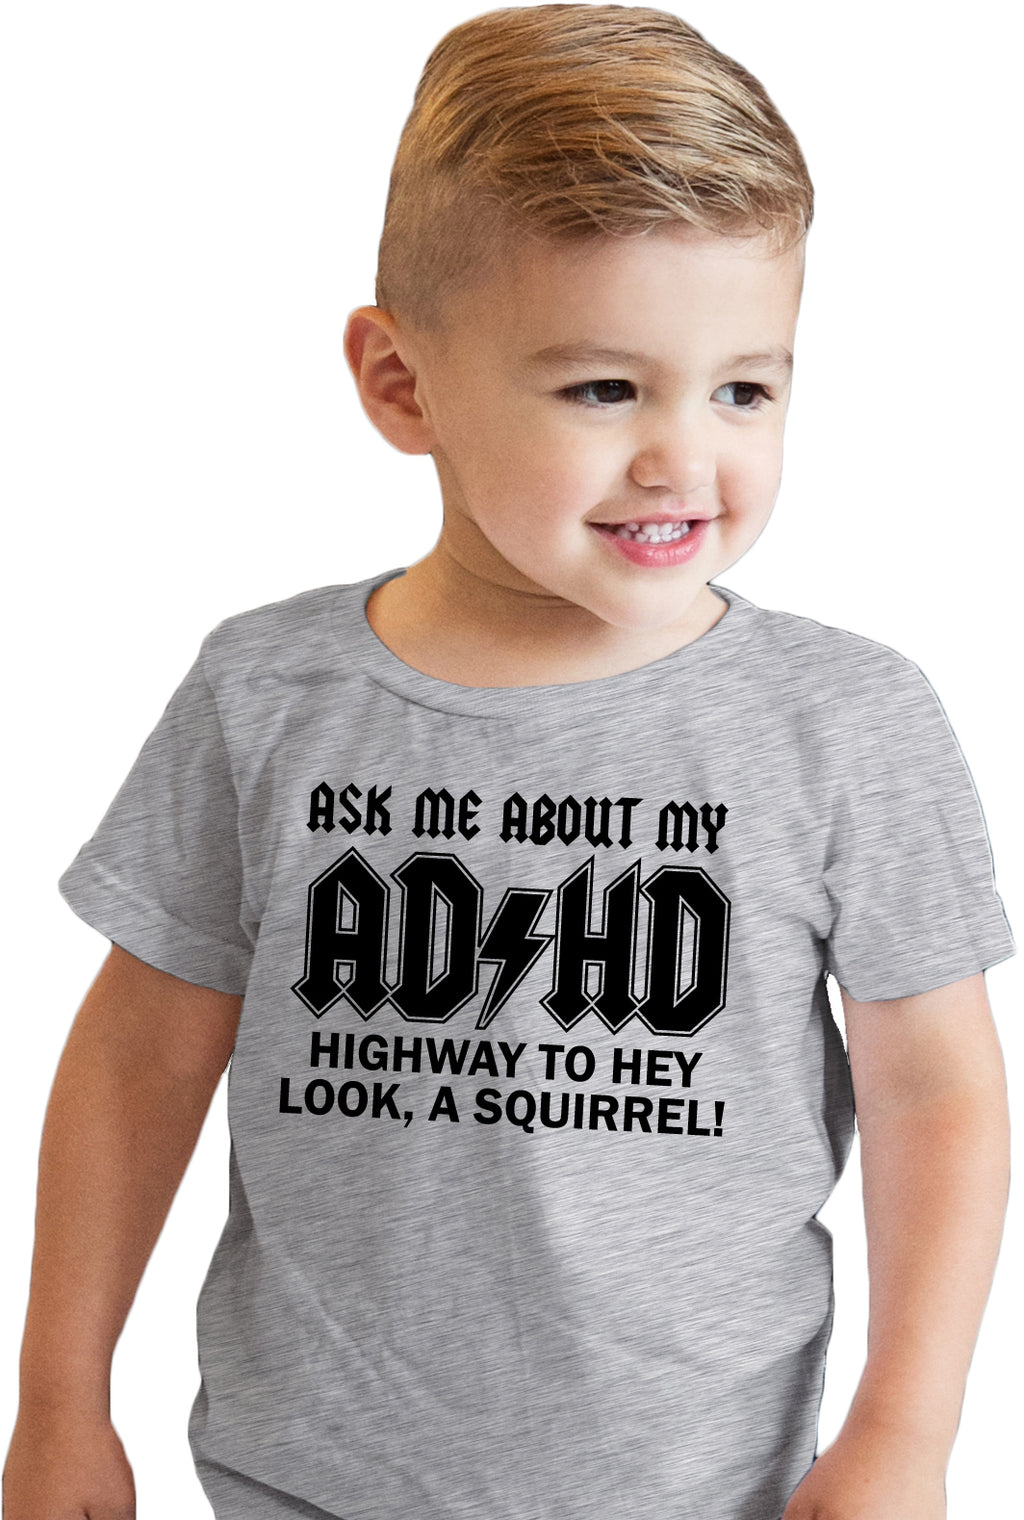 Toddler Ask Me About My ADHD Tshirt Funny Sarcastic Squirrel Flip Up Tee